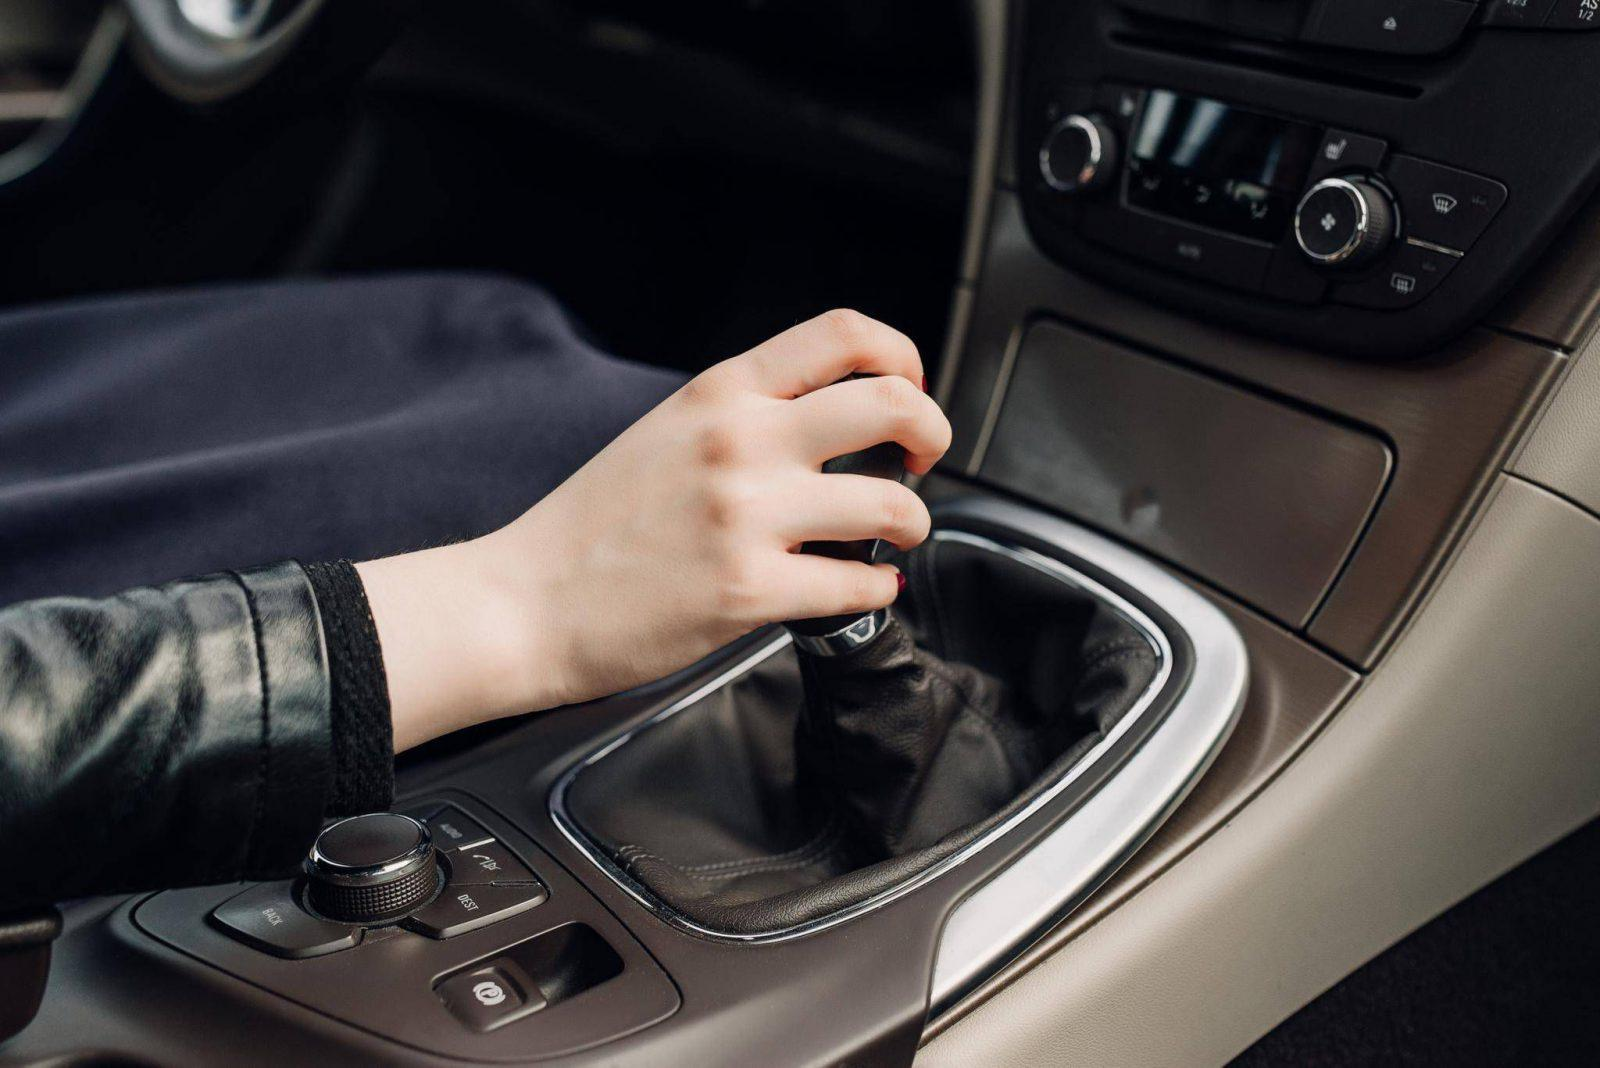 7 Things To AVOID While Driving An Automatic Transmission Car